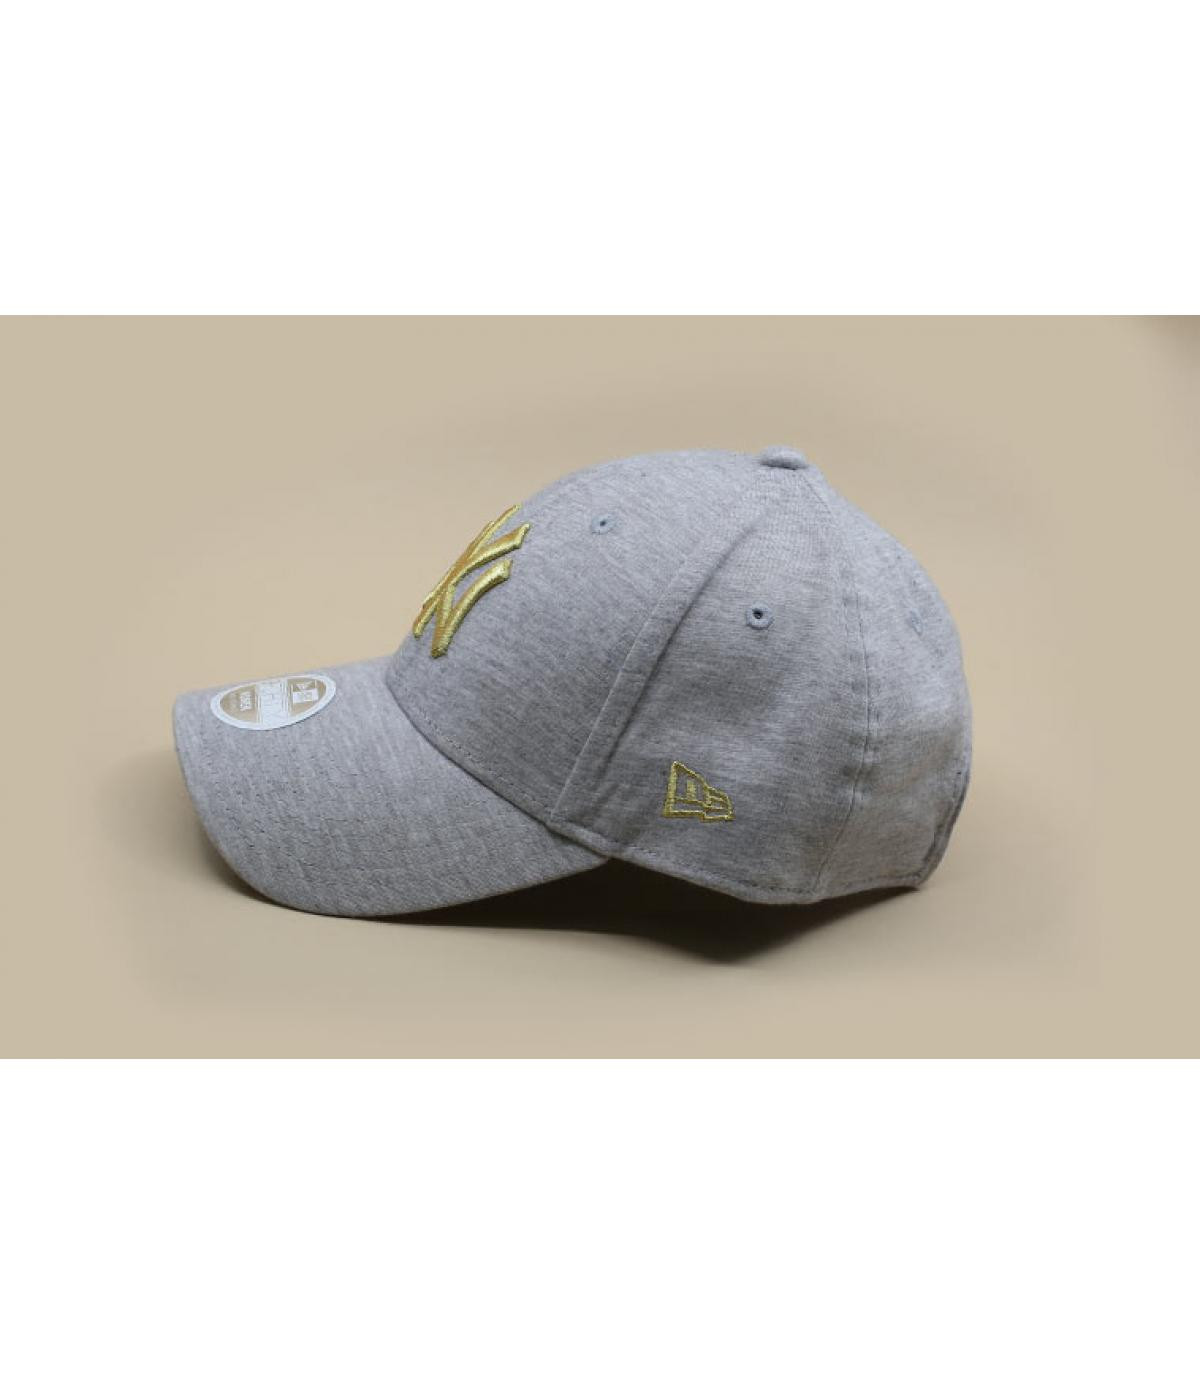 Détails Casquette Wmn Jersey NY 940 gray gold - image 4